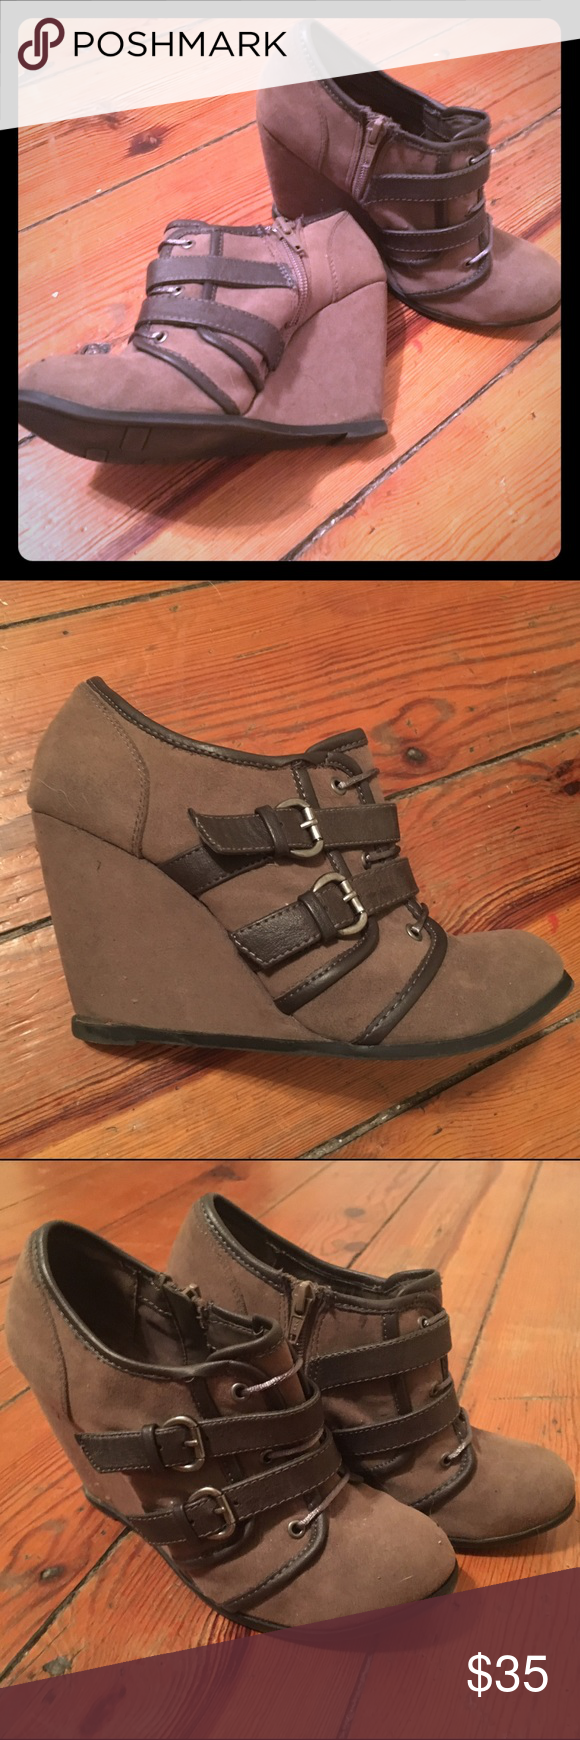 Fergalicious ankle boots Super cute and versatile booties. Perfect for the fall and winter and so easy to walk in! Fergalicious Shoes Ankle Boots & Booties